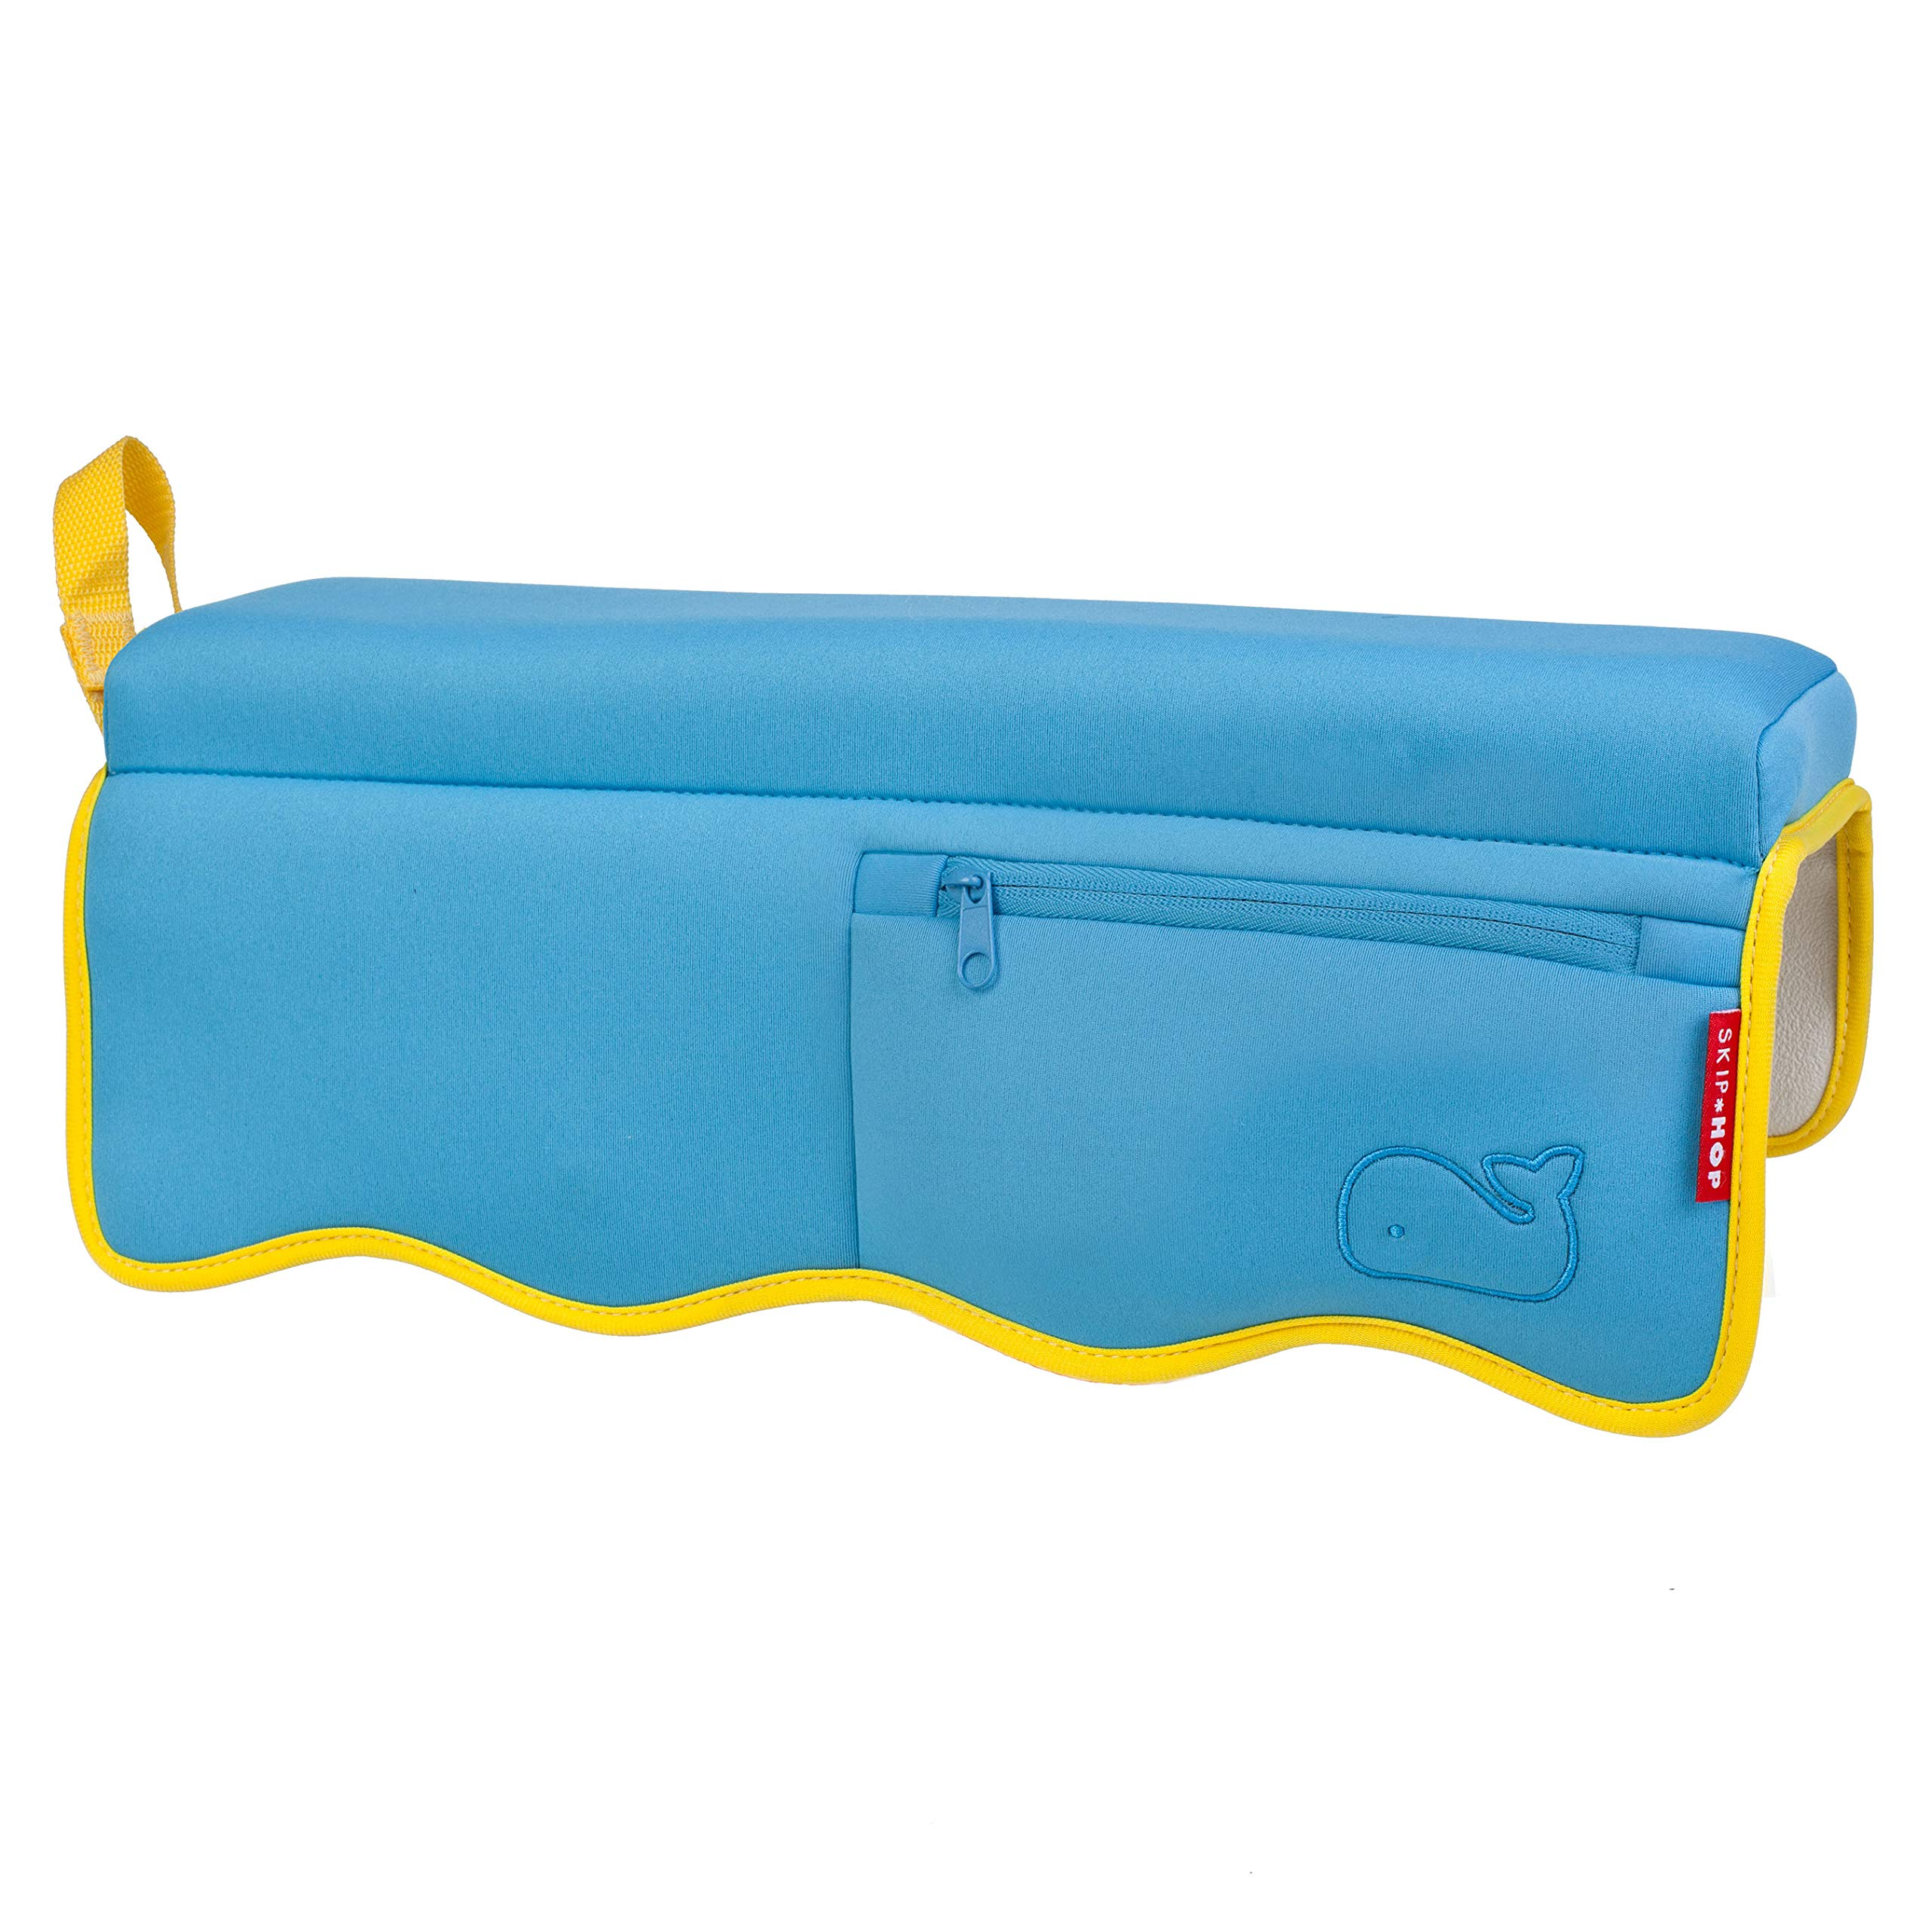 Skip Hop Moby Baby Bath Elbow Rest, Blue by Skip Hop